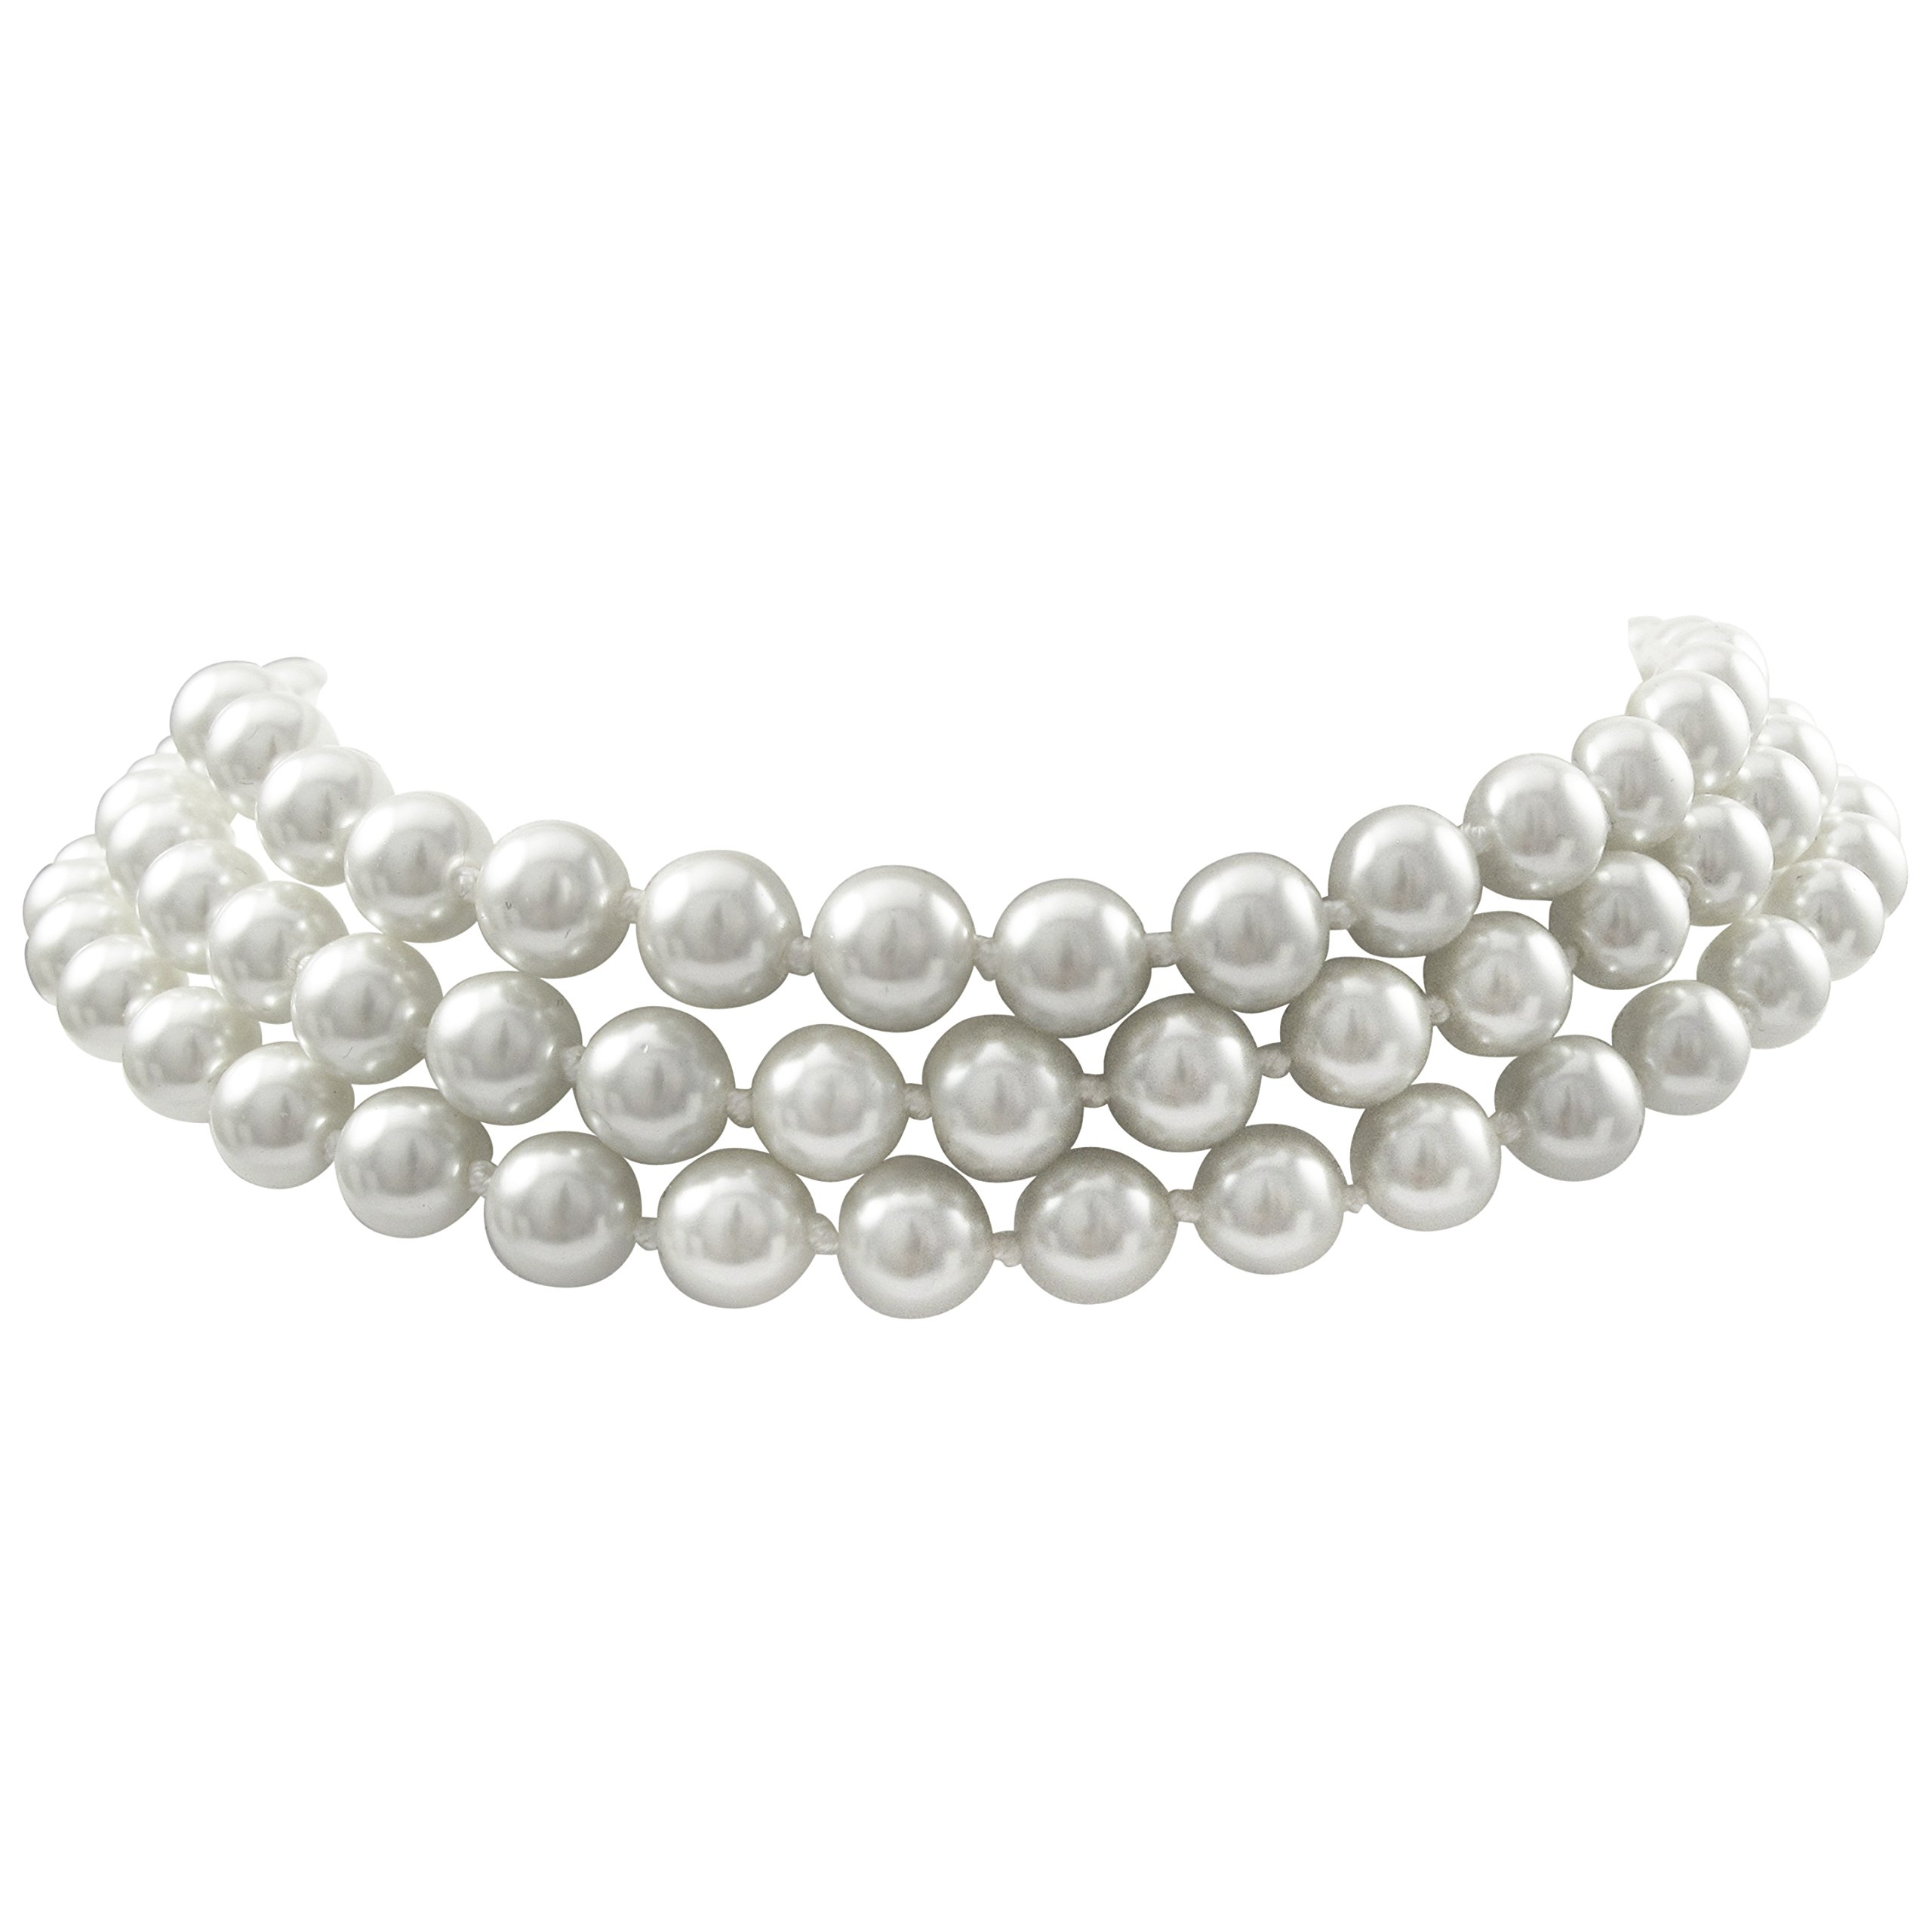 Isaac Kieran Faux Pearl Choker Necklace, Rhodium Finish, 3-Strands - 8-mm Pearls, 14 Inch plus 3 Inch Extender (White)